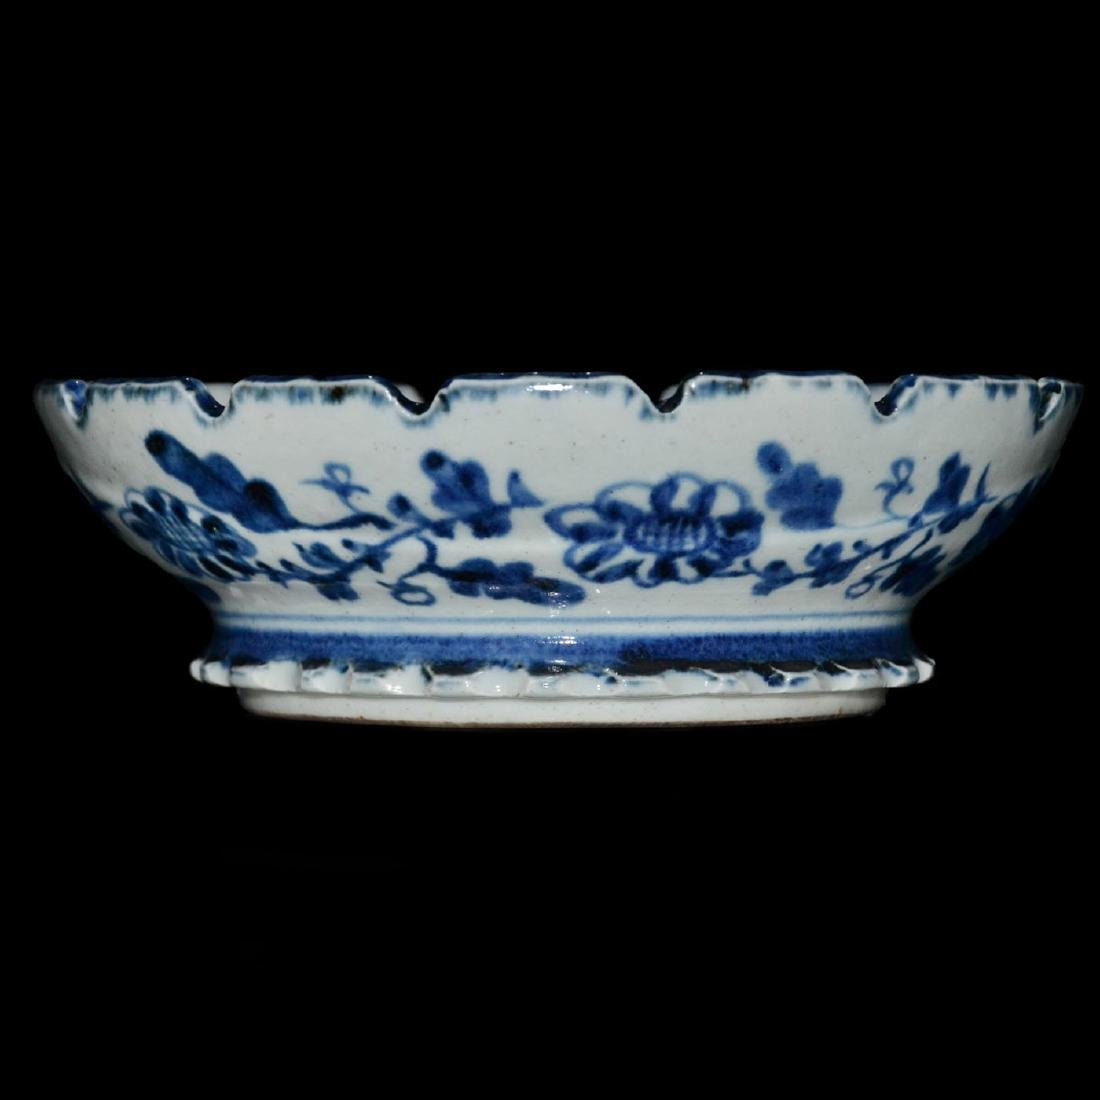 Ming, An Unusual Blue and White Bracket-Lobed Dish - 3